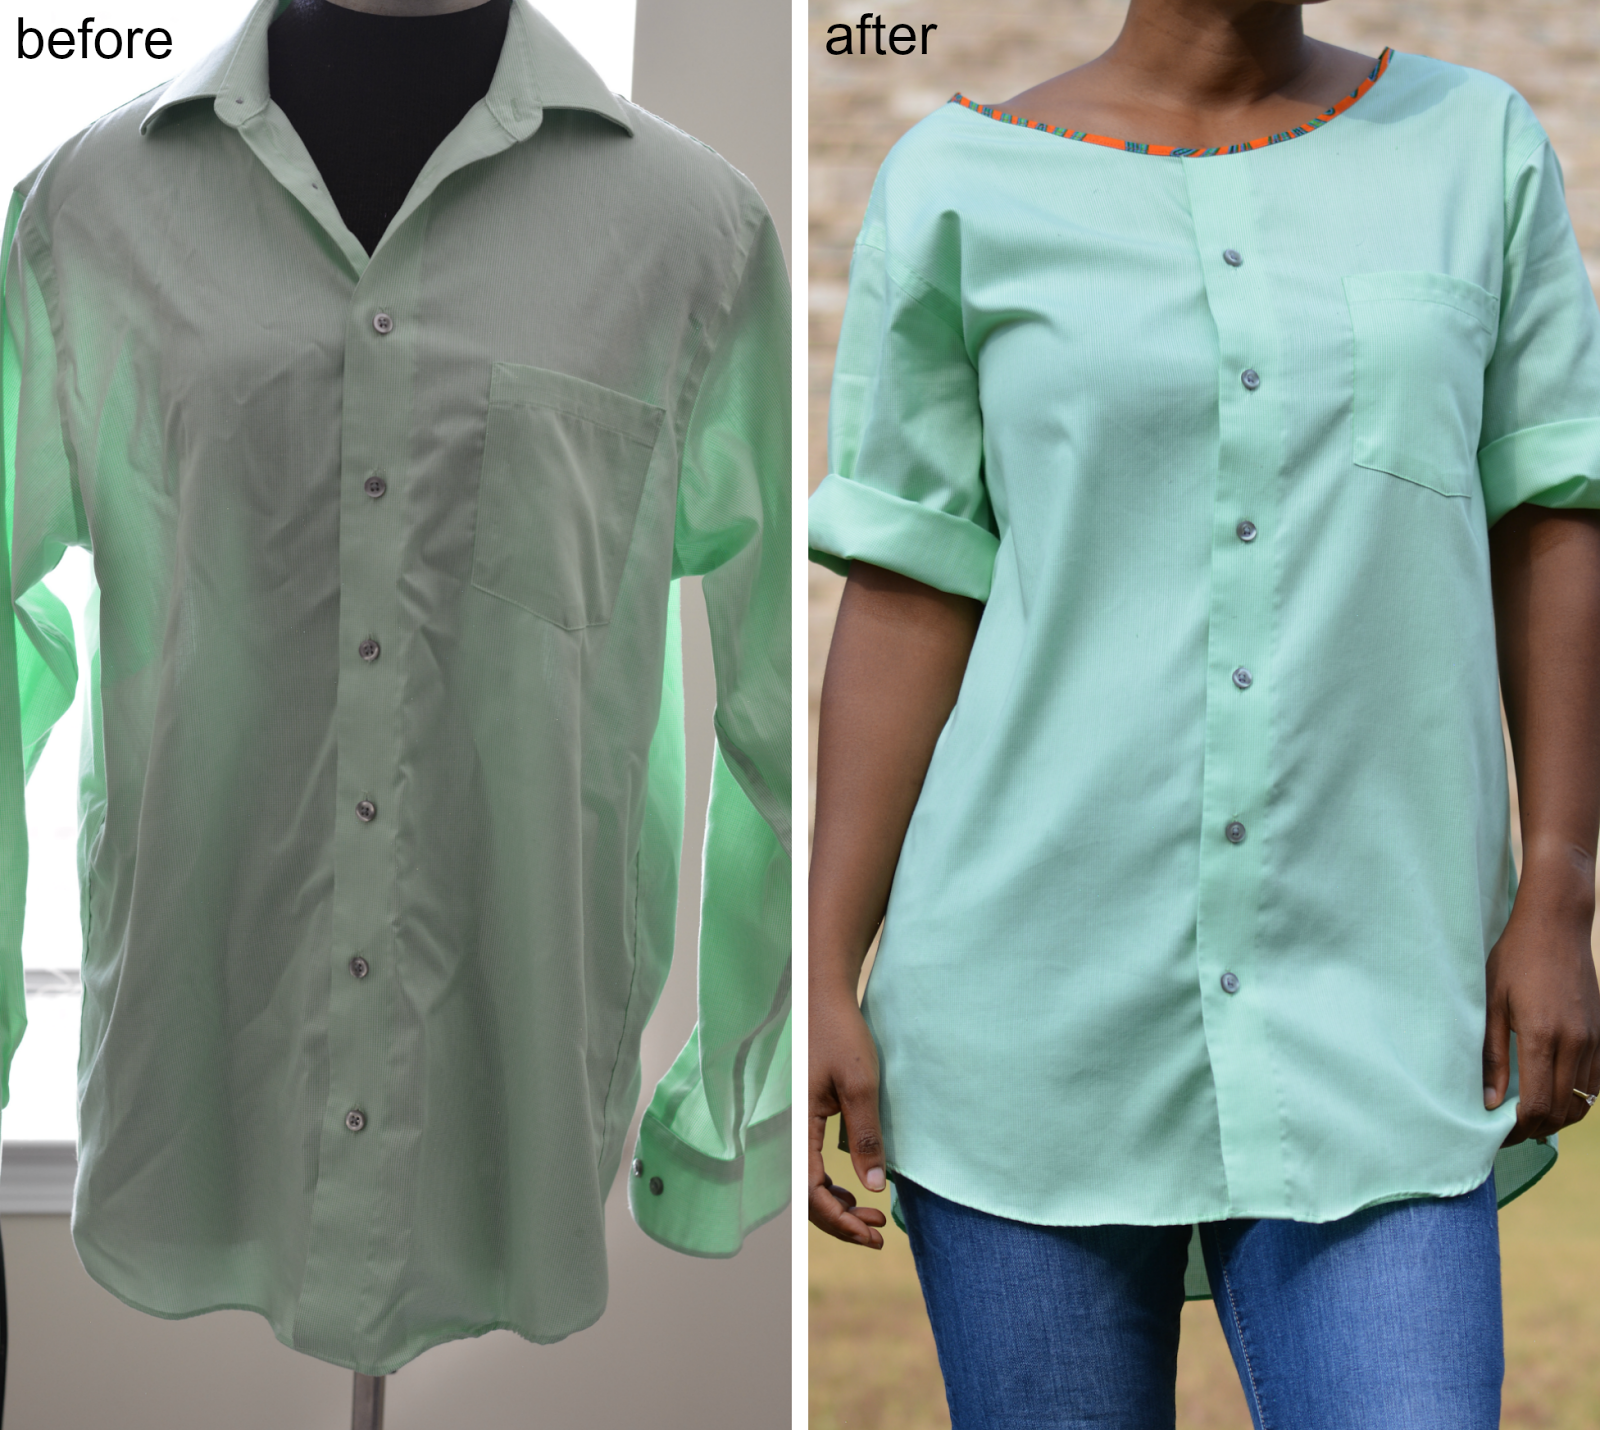 refashion a men's shirt into a tunic top